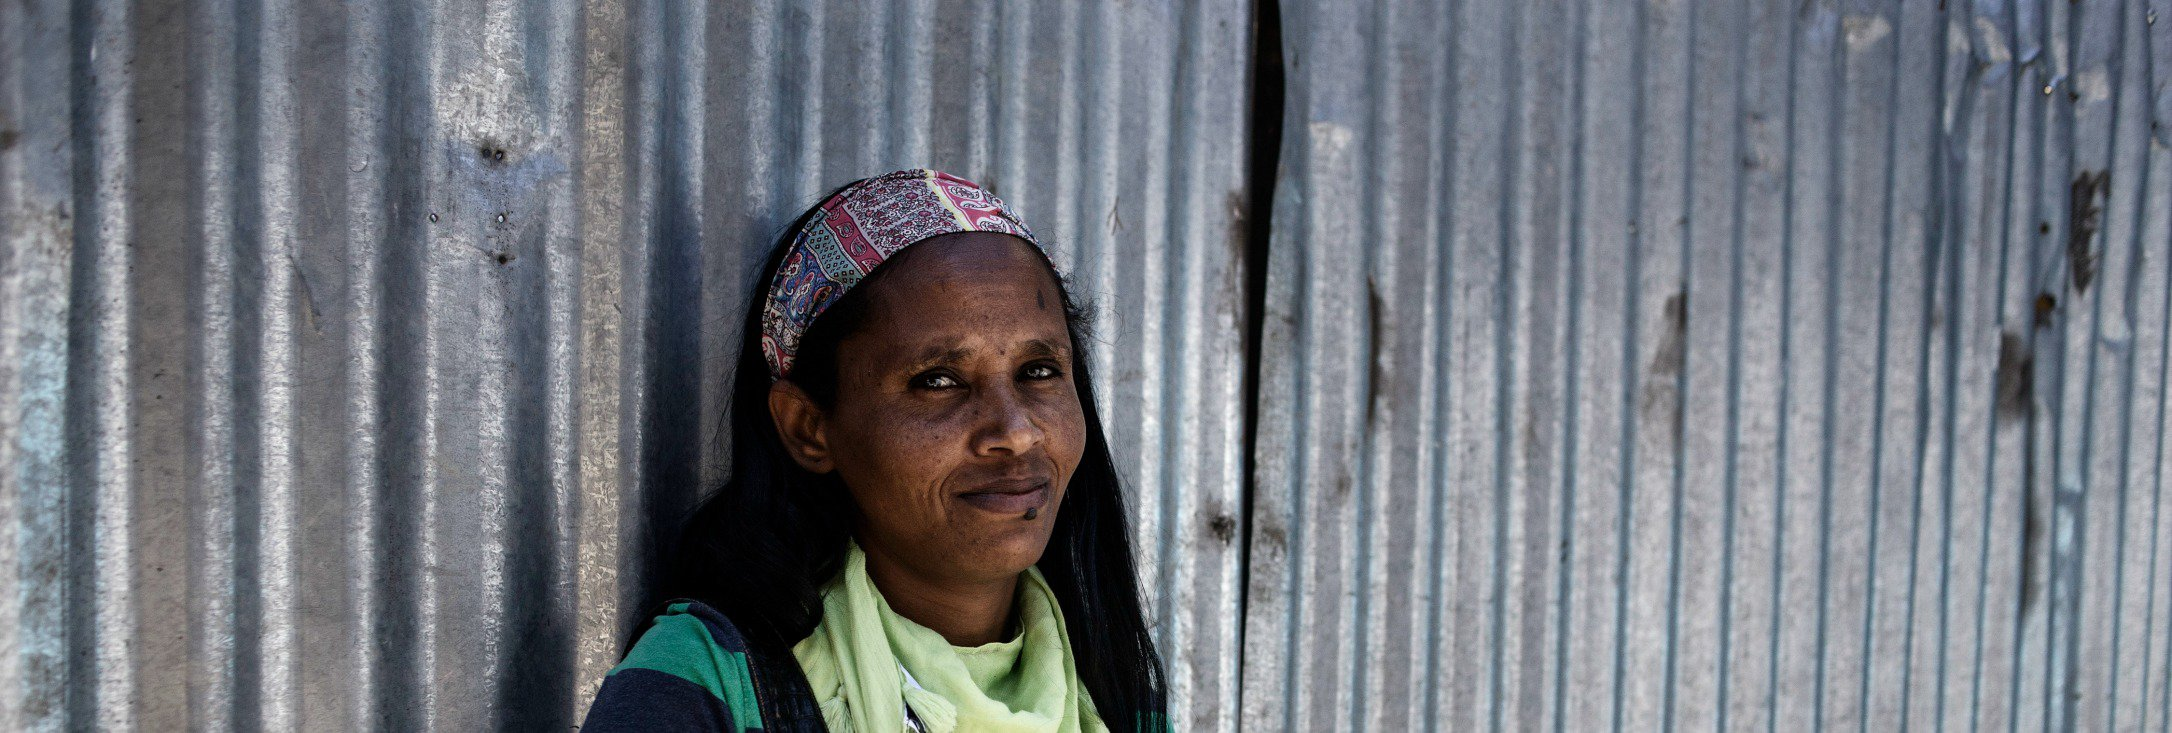 Tirhas, 35, has been in Ethiopia for six years but is not permitted to work